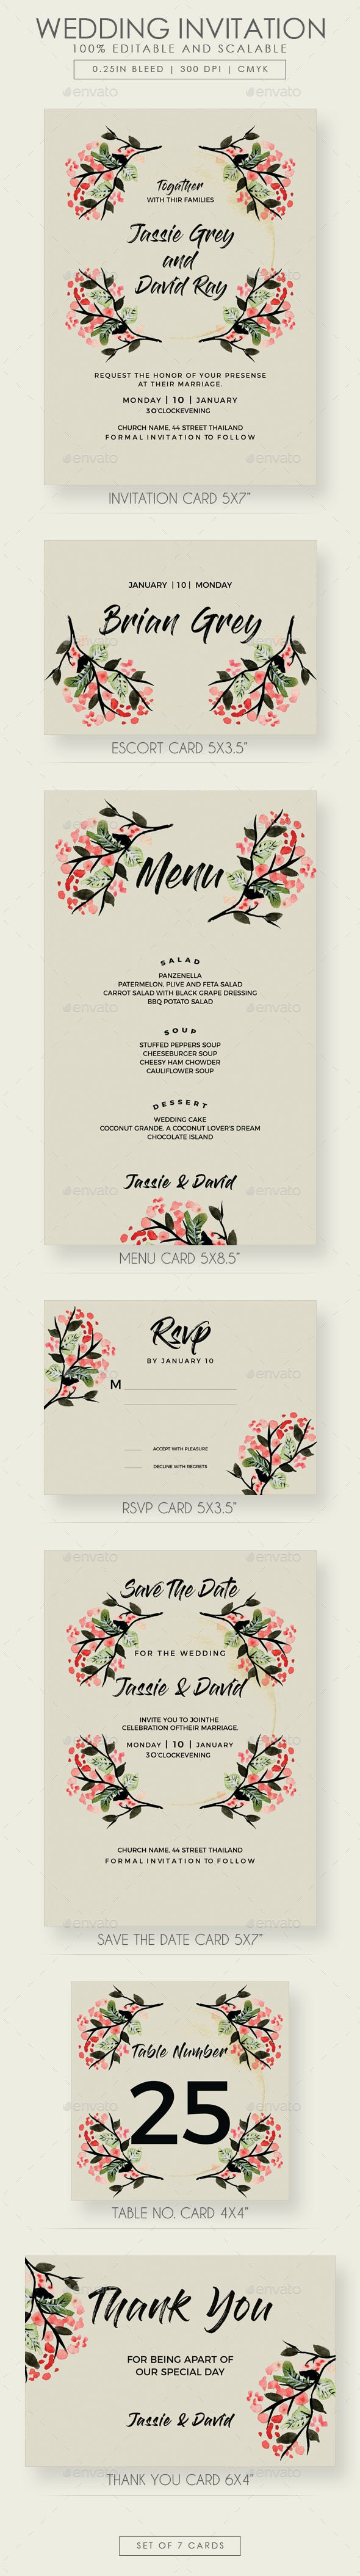 Floral Wedding Invitation Suite - Wedding Greeting Cards